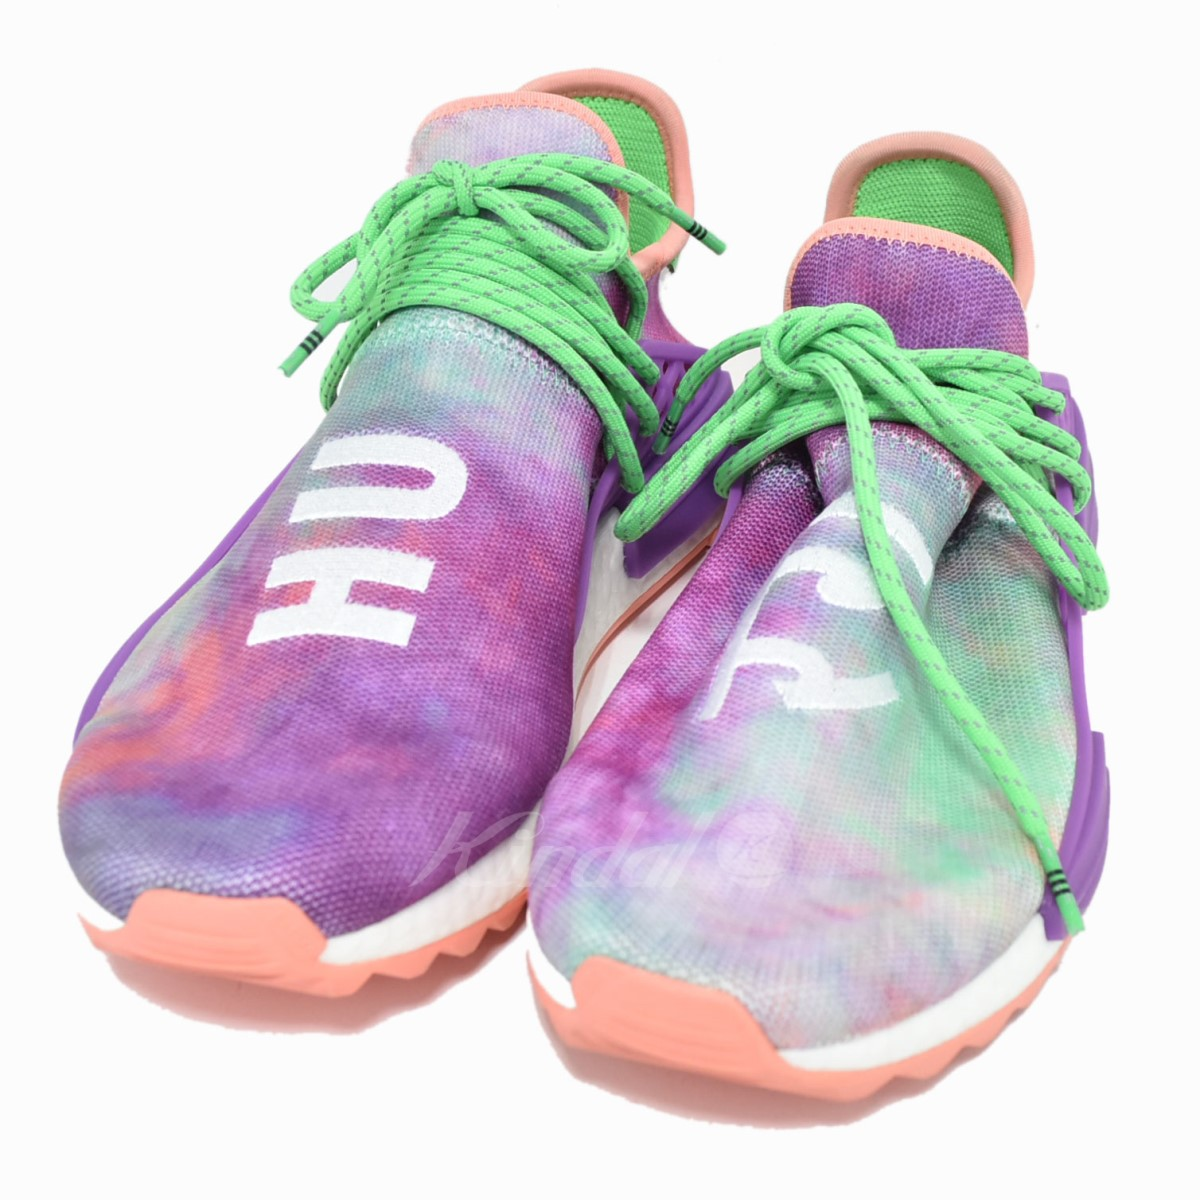 outlet store e8d47 95c35 adidas PW NMD HU Holi sneakers purple size: 28 5cm (Adidas)